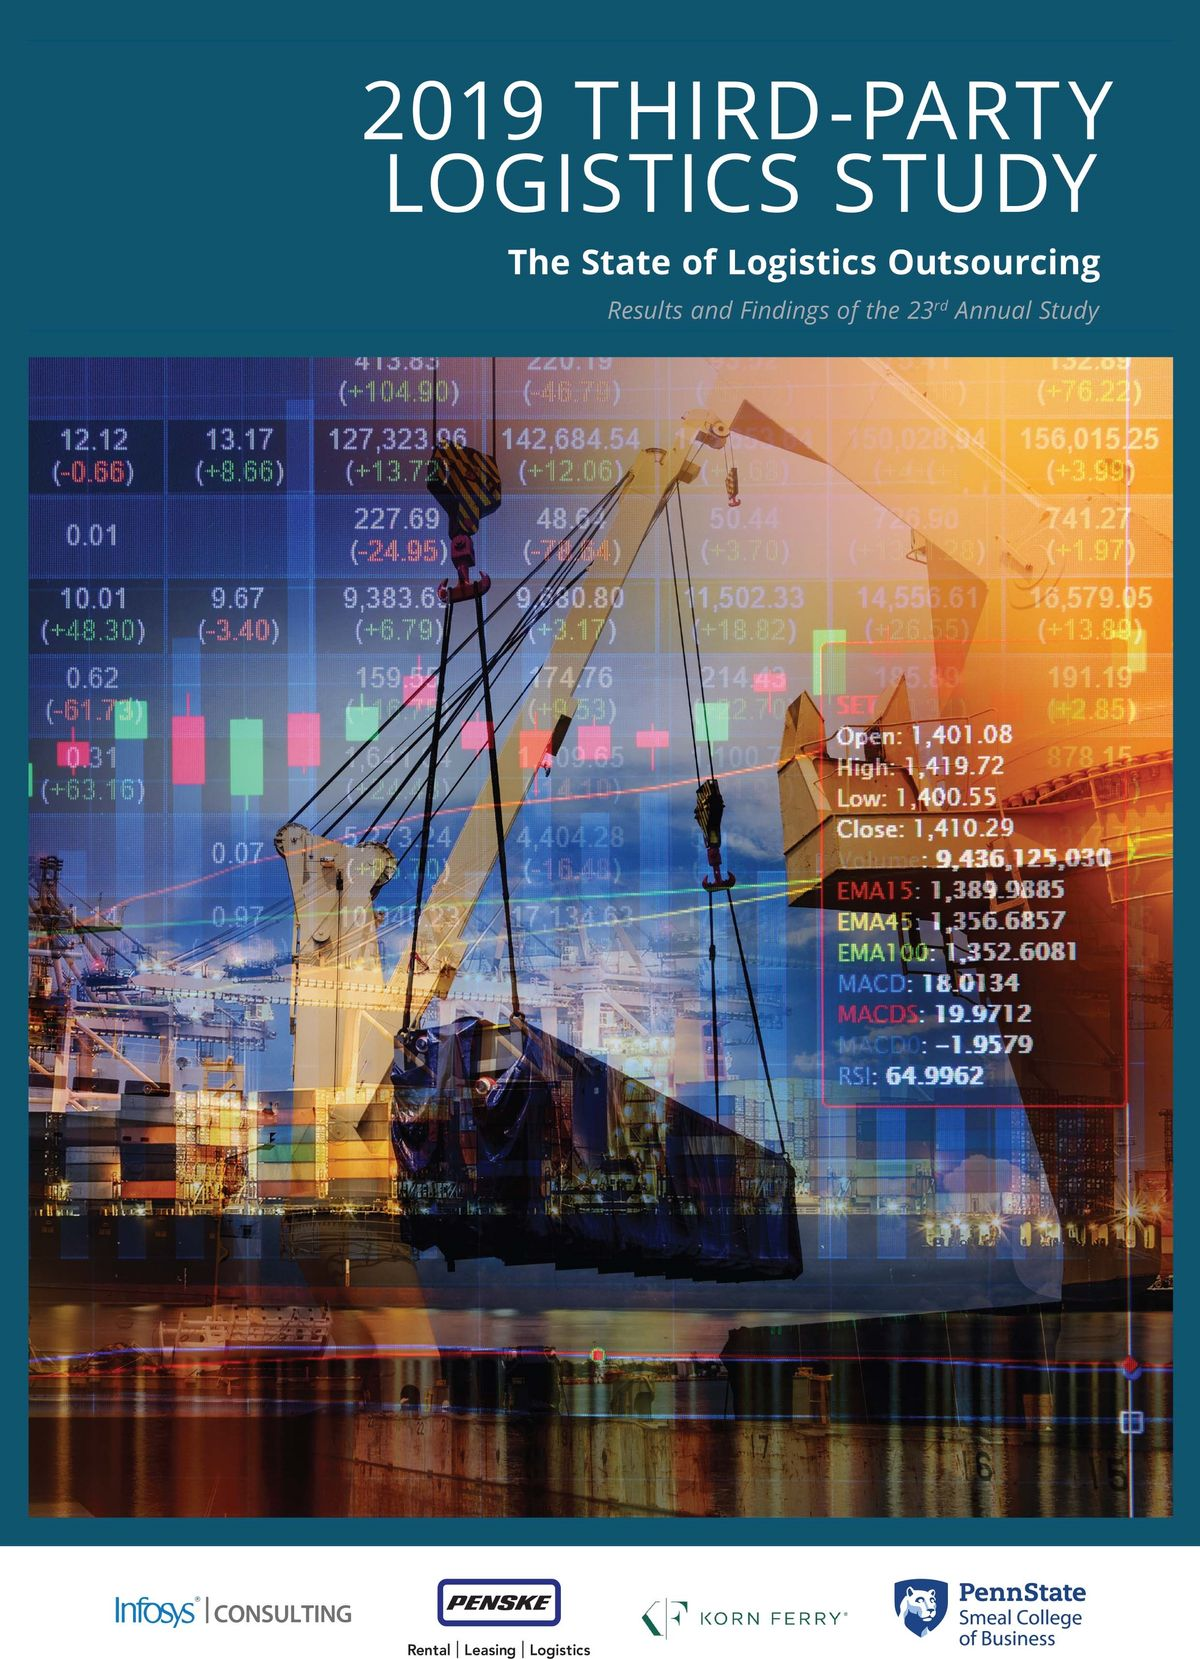 Penske Logistics Presents 2019 Third-Party Logistics Study: State of Logistics Outsourcing